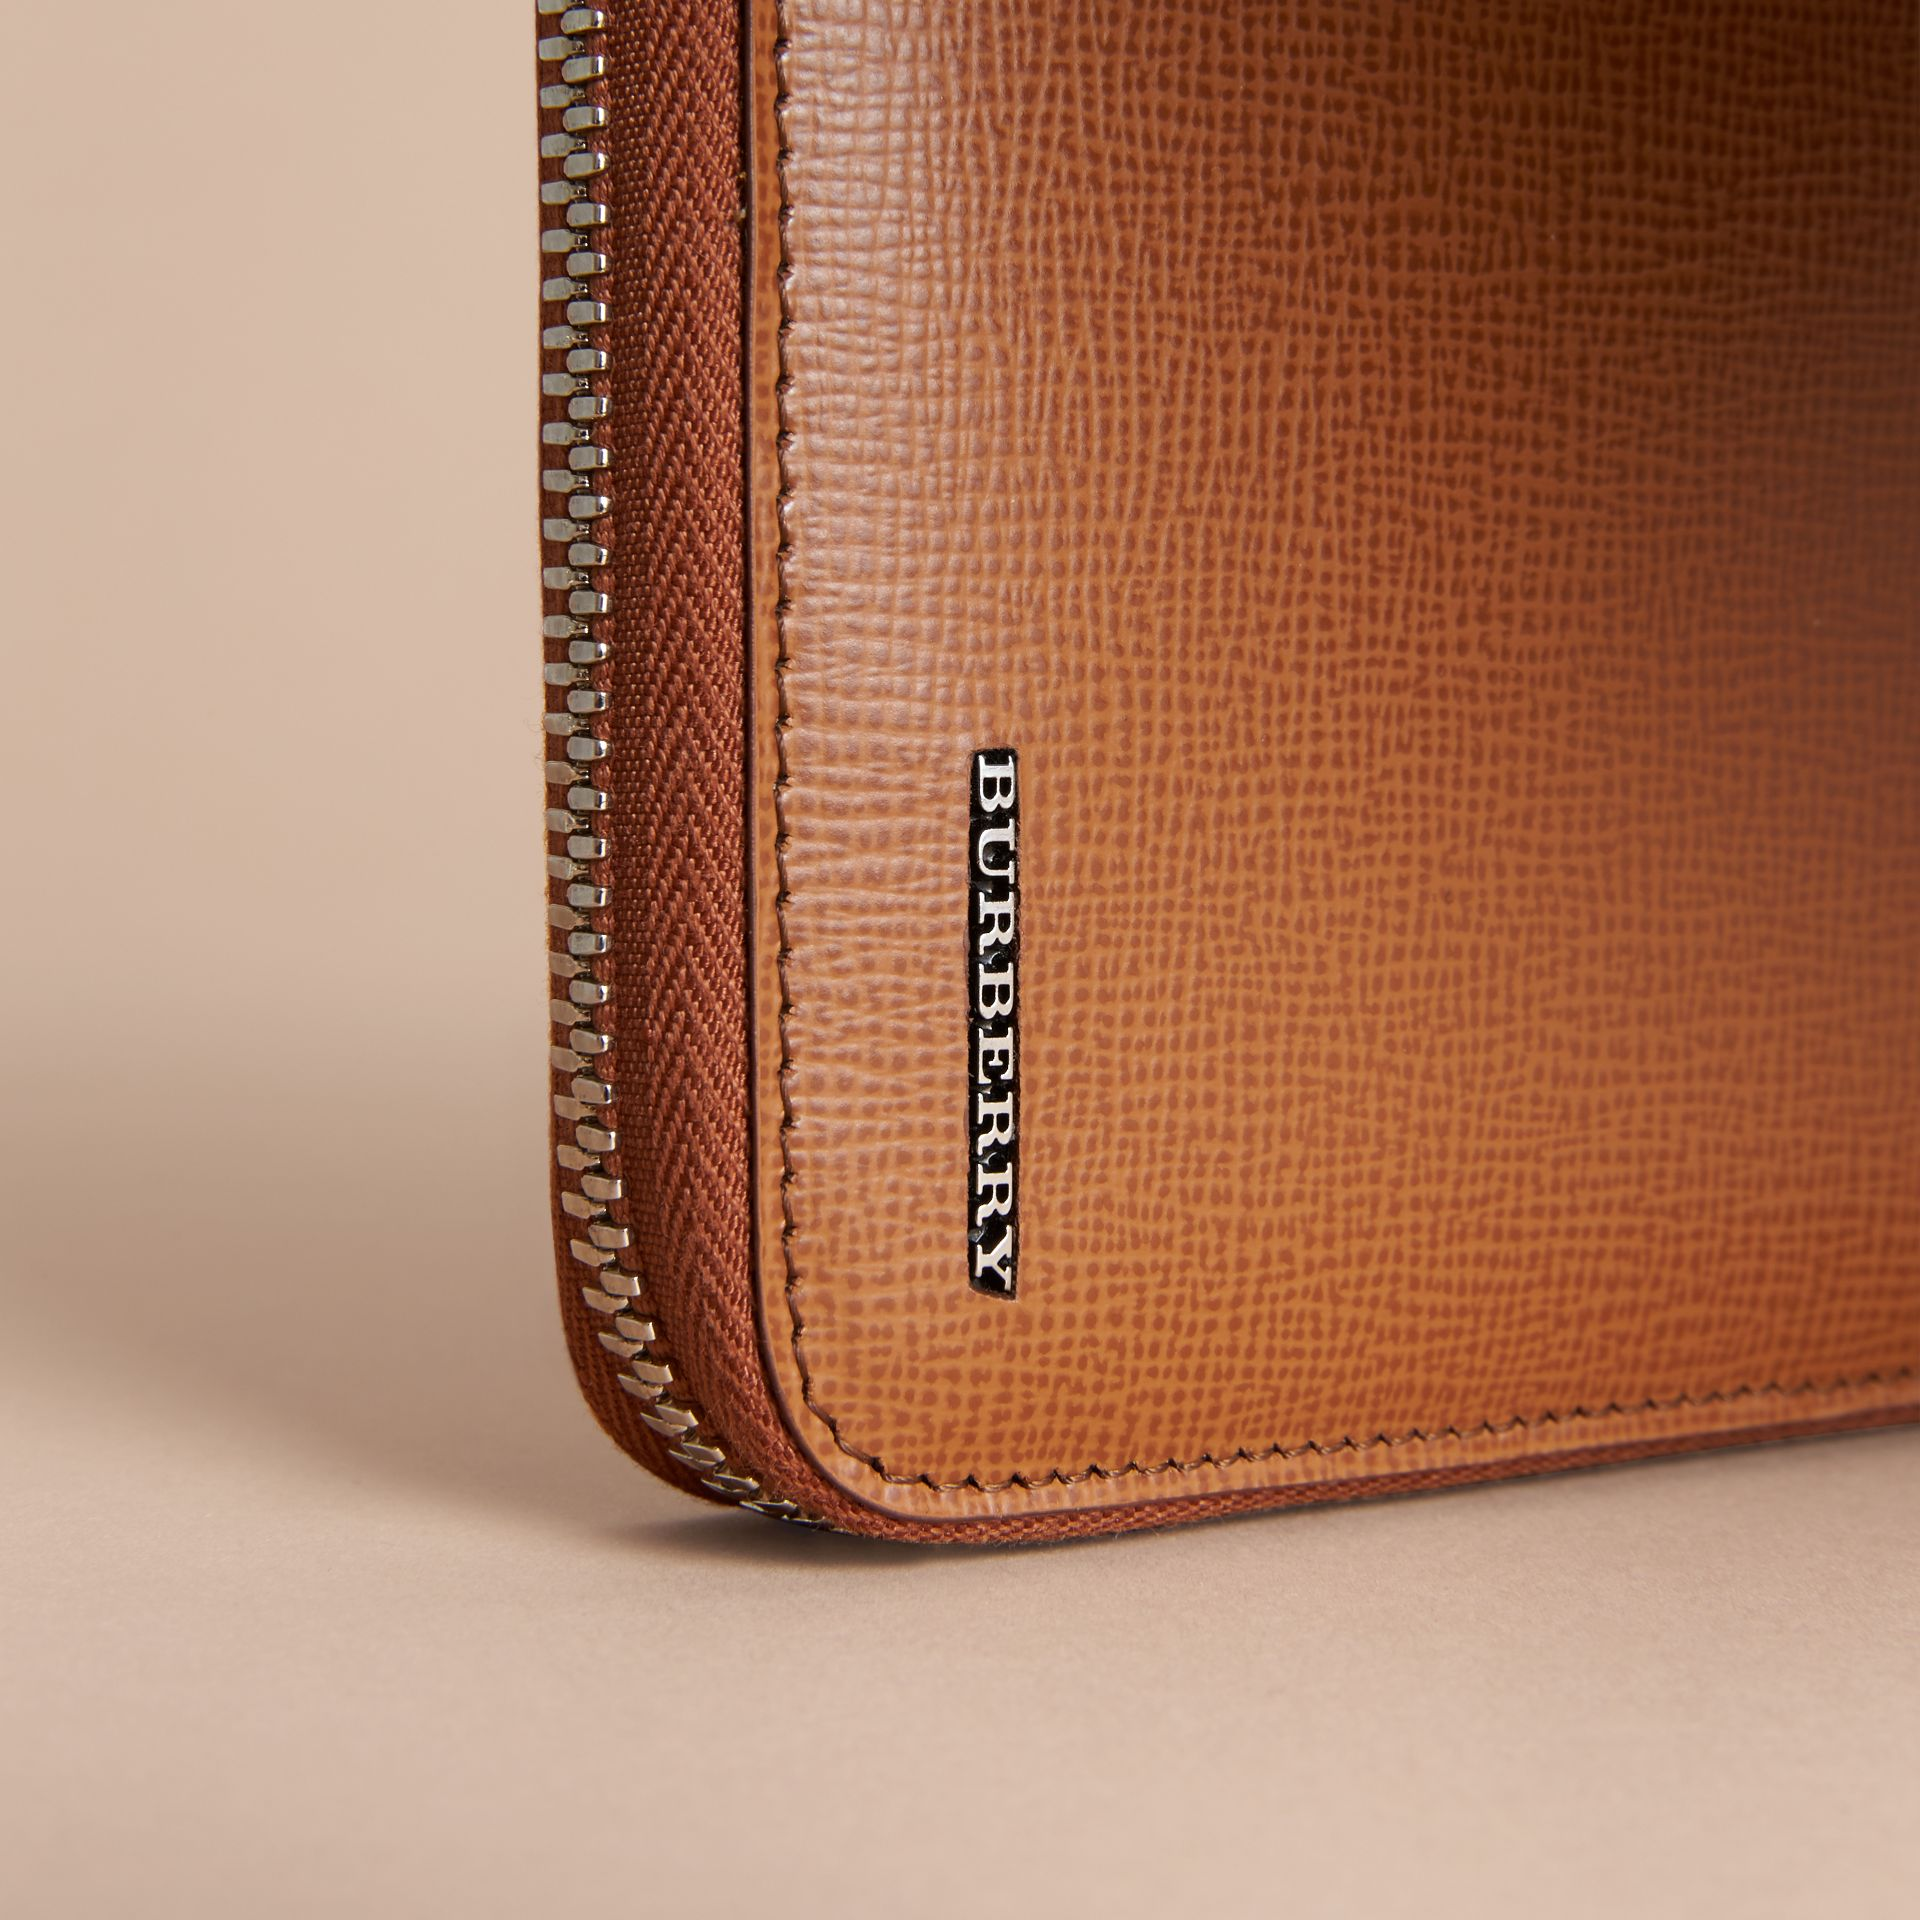 London Leather Ziparound Wallet in Tan | Burberry - gallery image 5